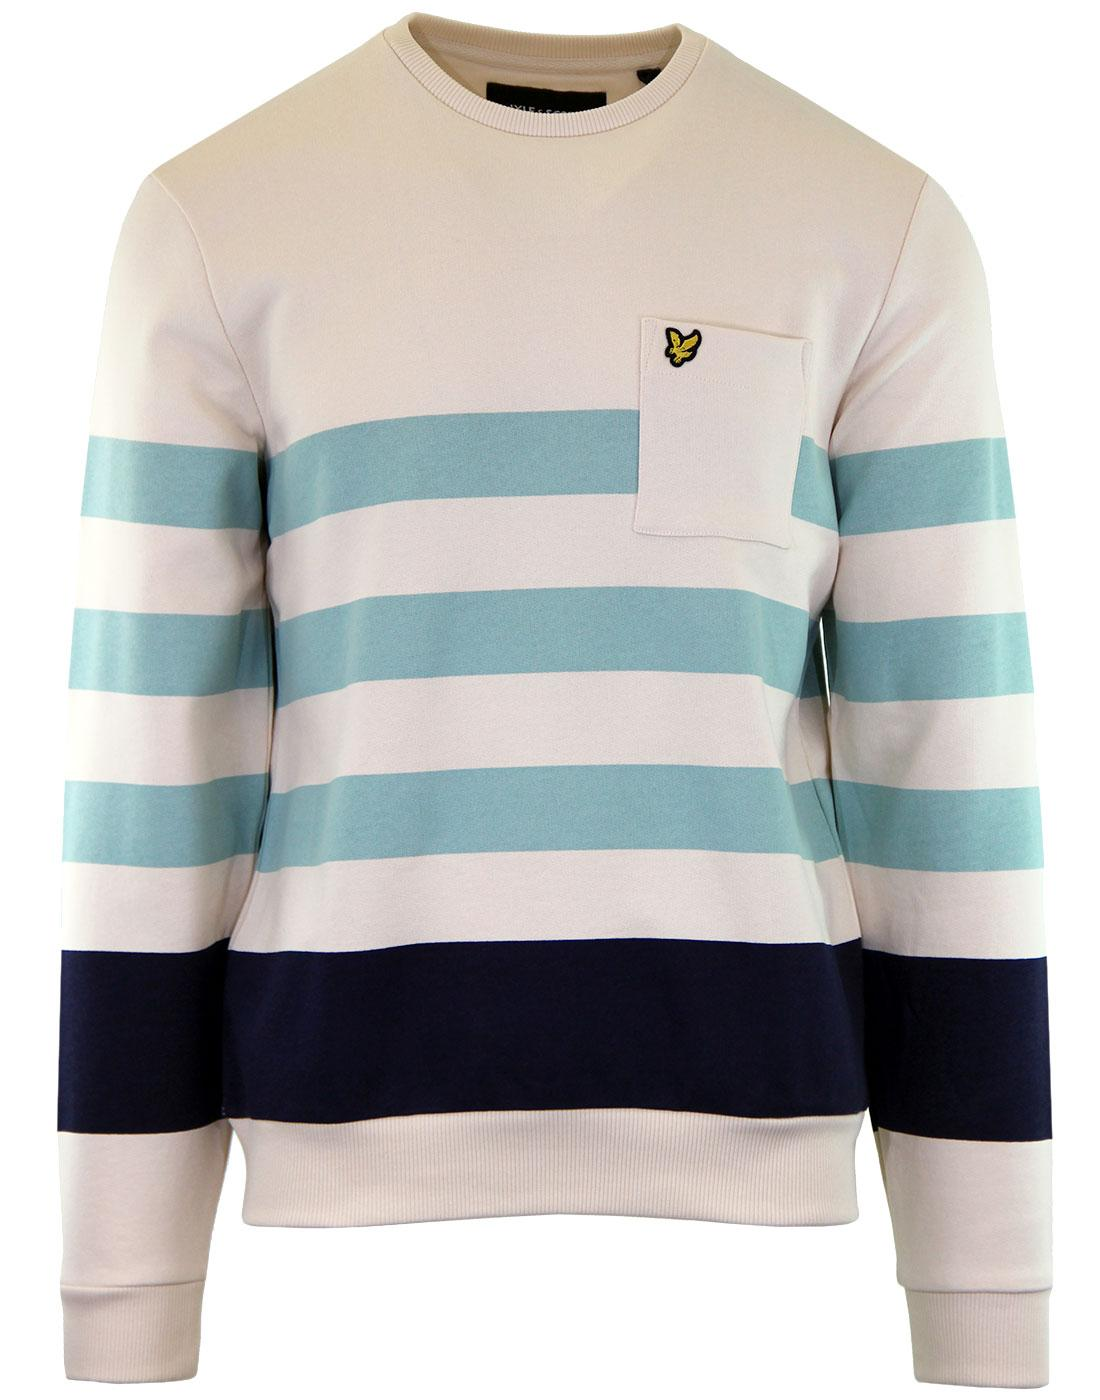 LYLE & SCOTT Men's Retro Indie Stripe Sweatshirt S